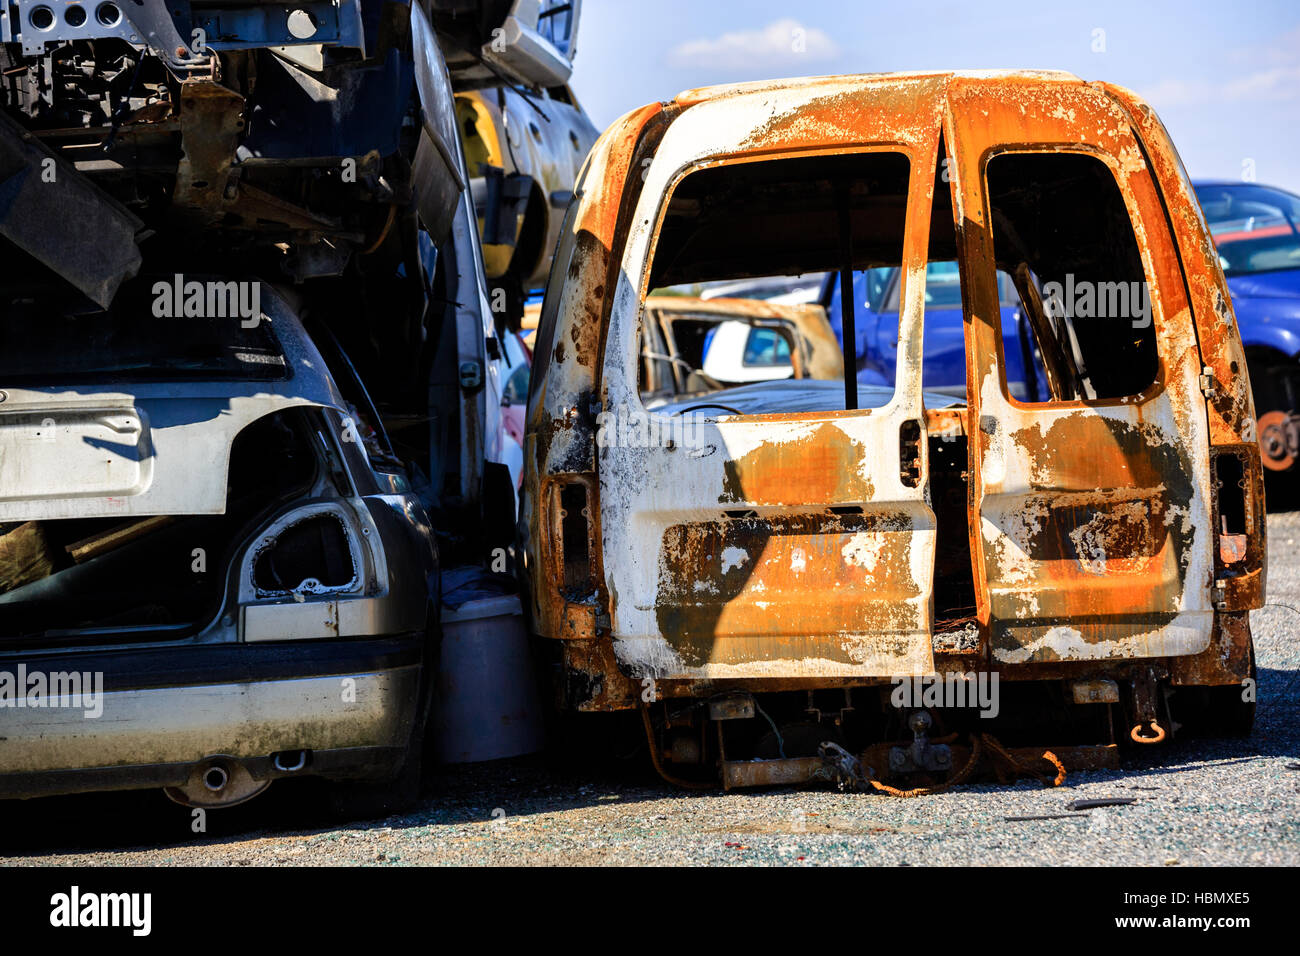 A scrap yard and car dump with wrecked Stock Photo